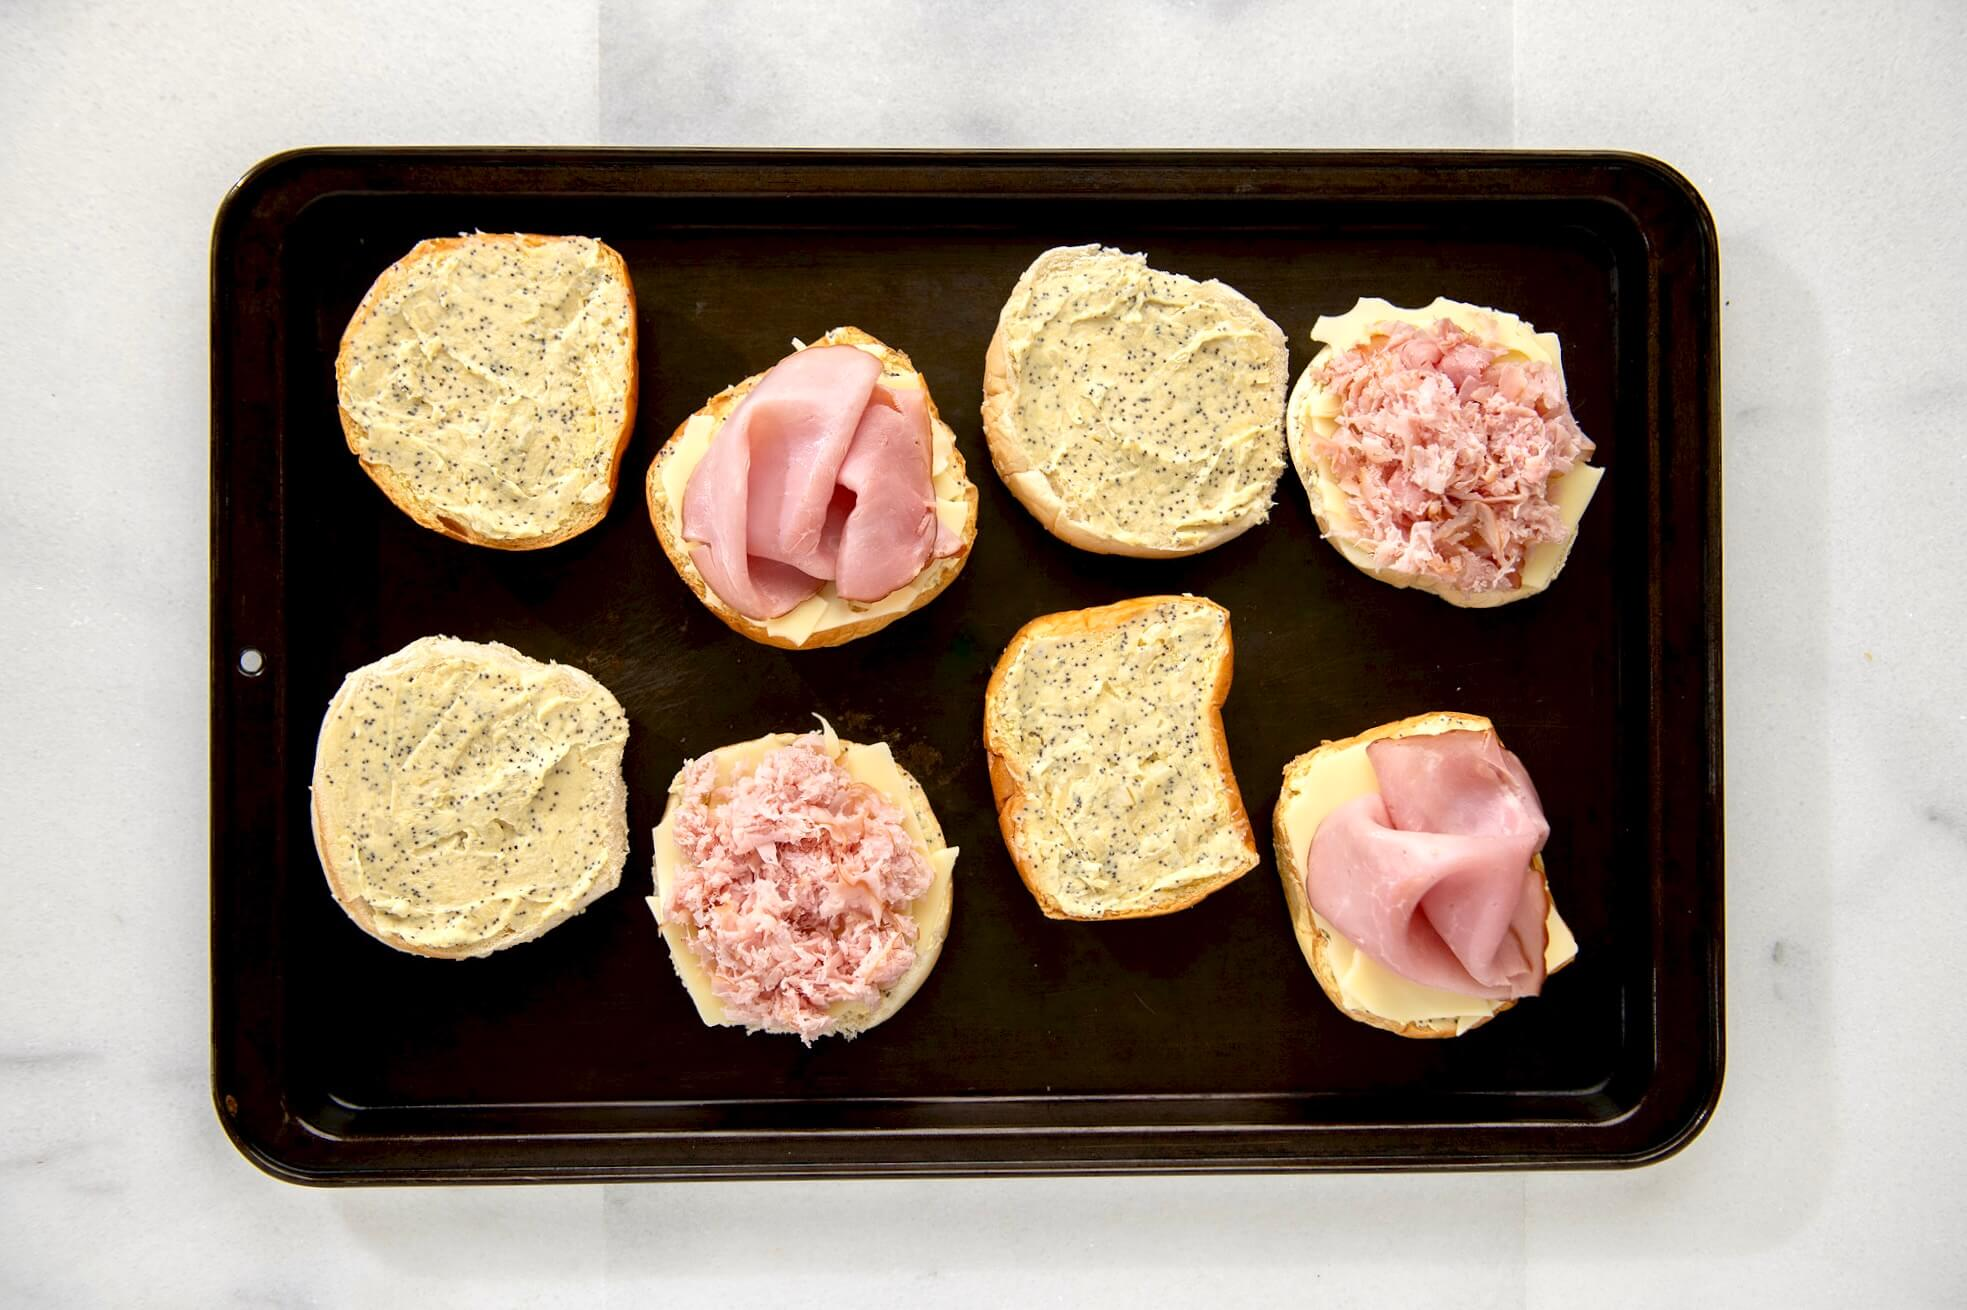 The classic ham sandwich is redefined with two kinds of cheese, a flavorful spread, and a quick trip to the oven. Make-ahead & party perfect!